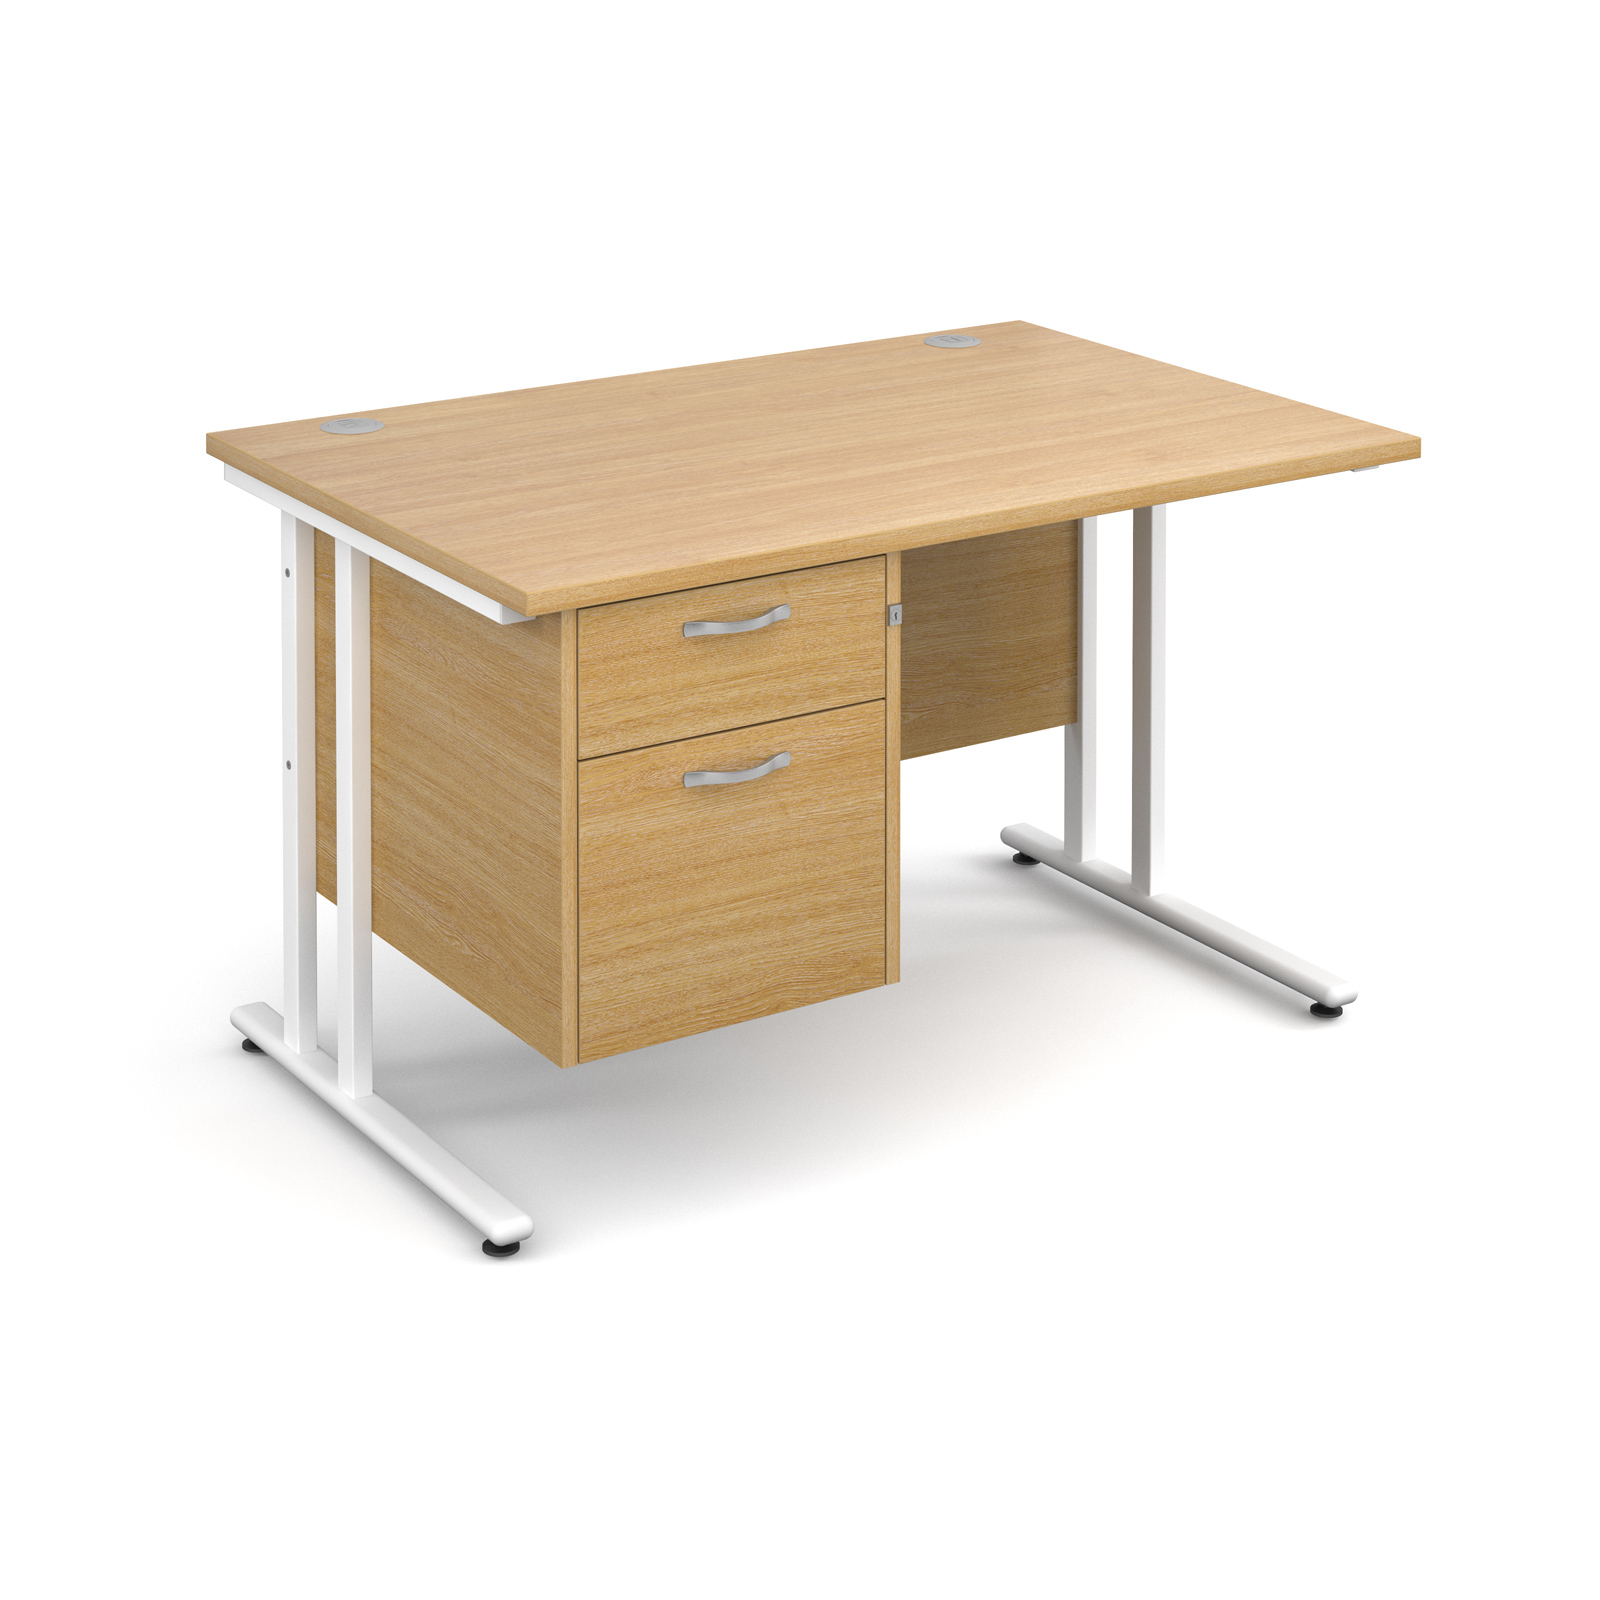 Dams Maestro 25 WL Straight Desk Single Pedestal